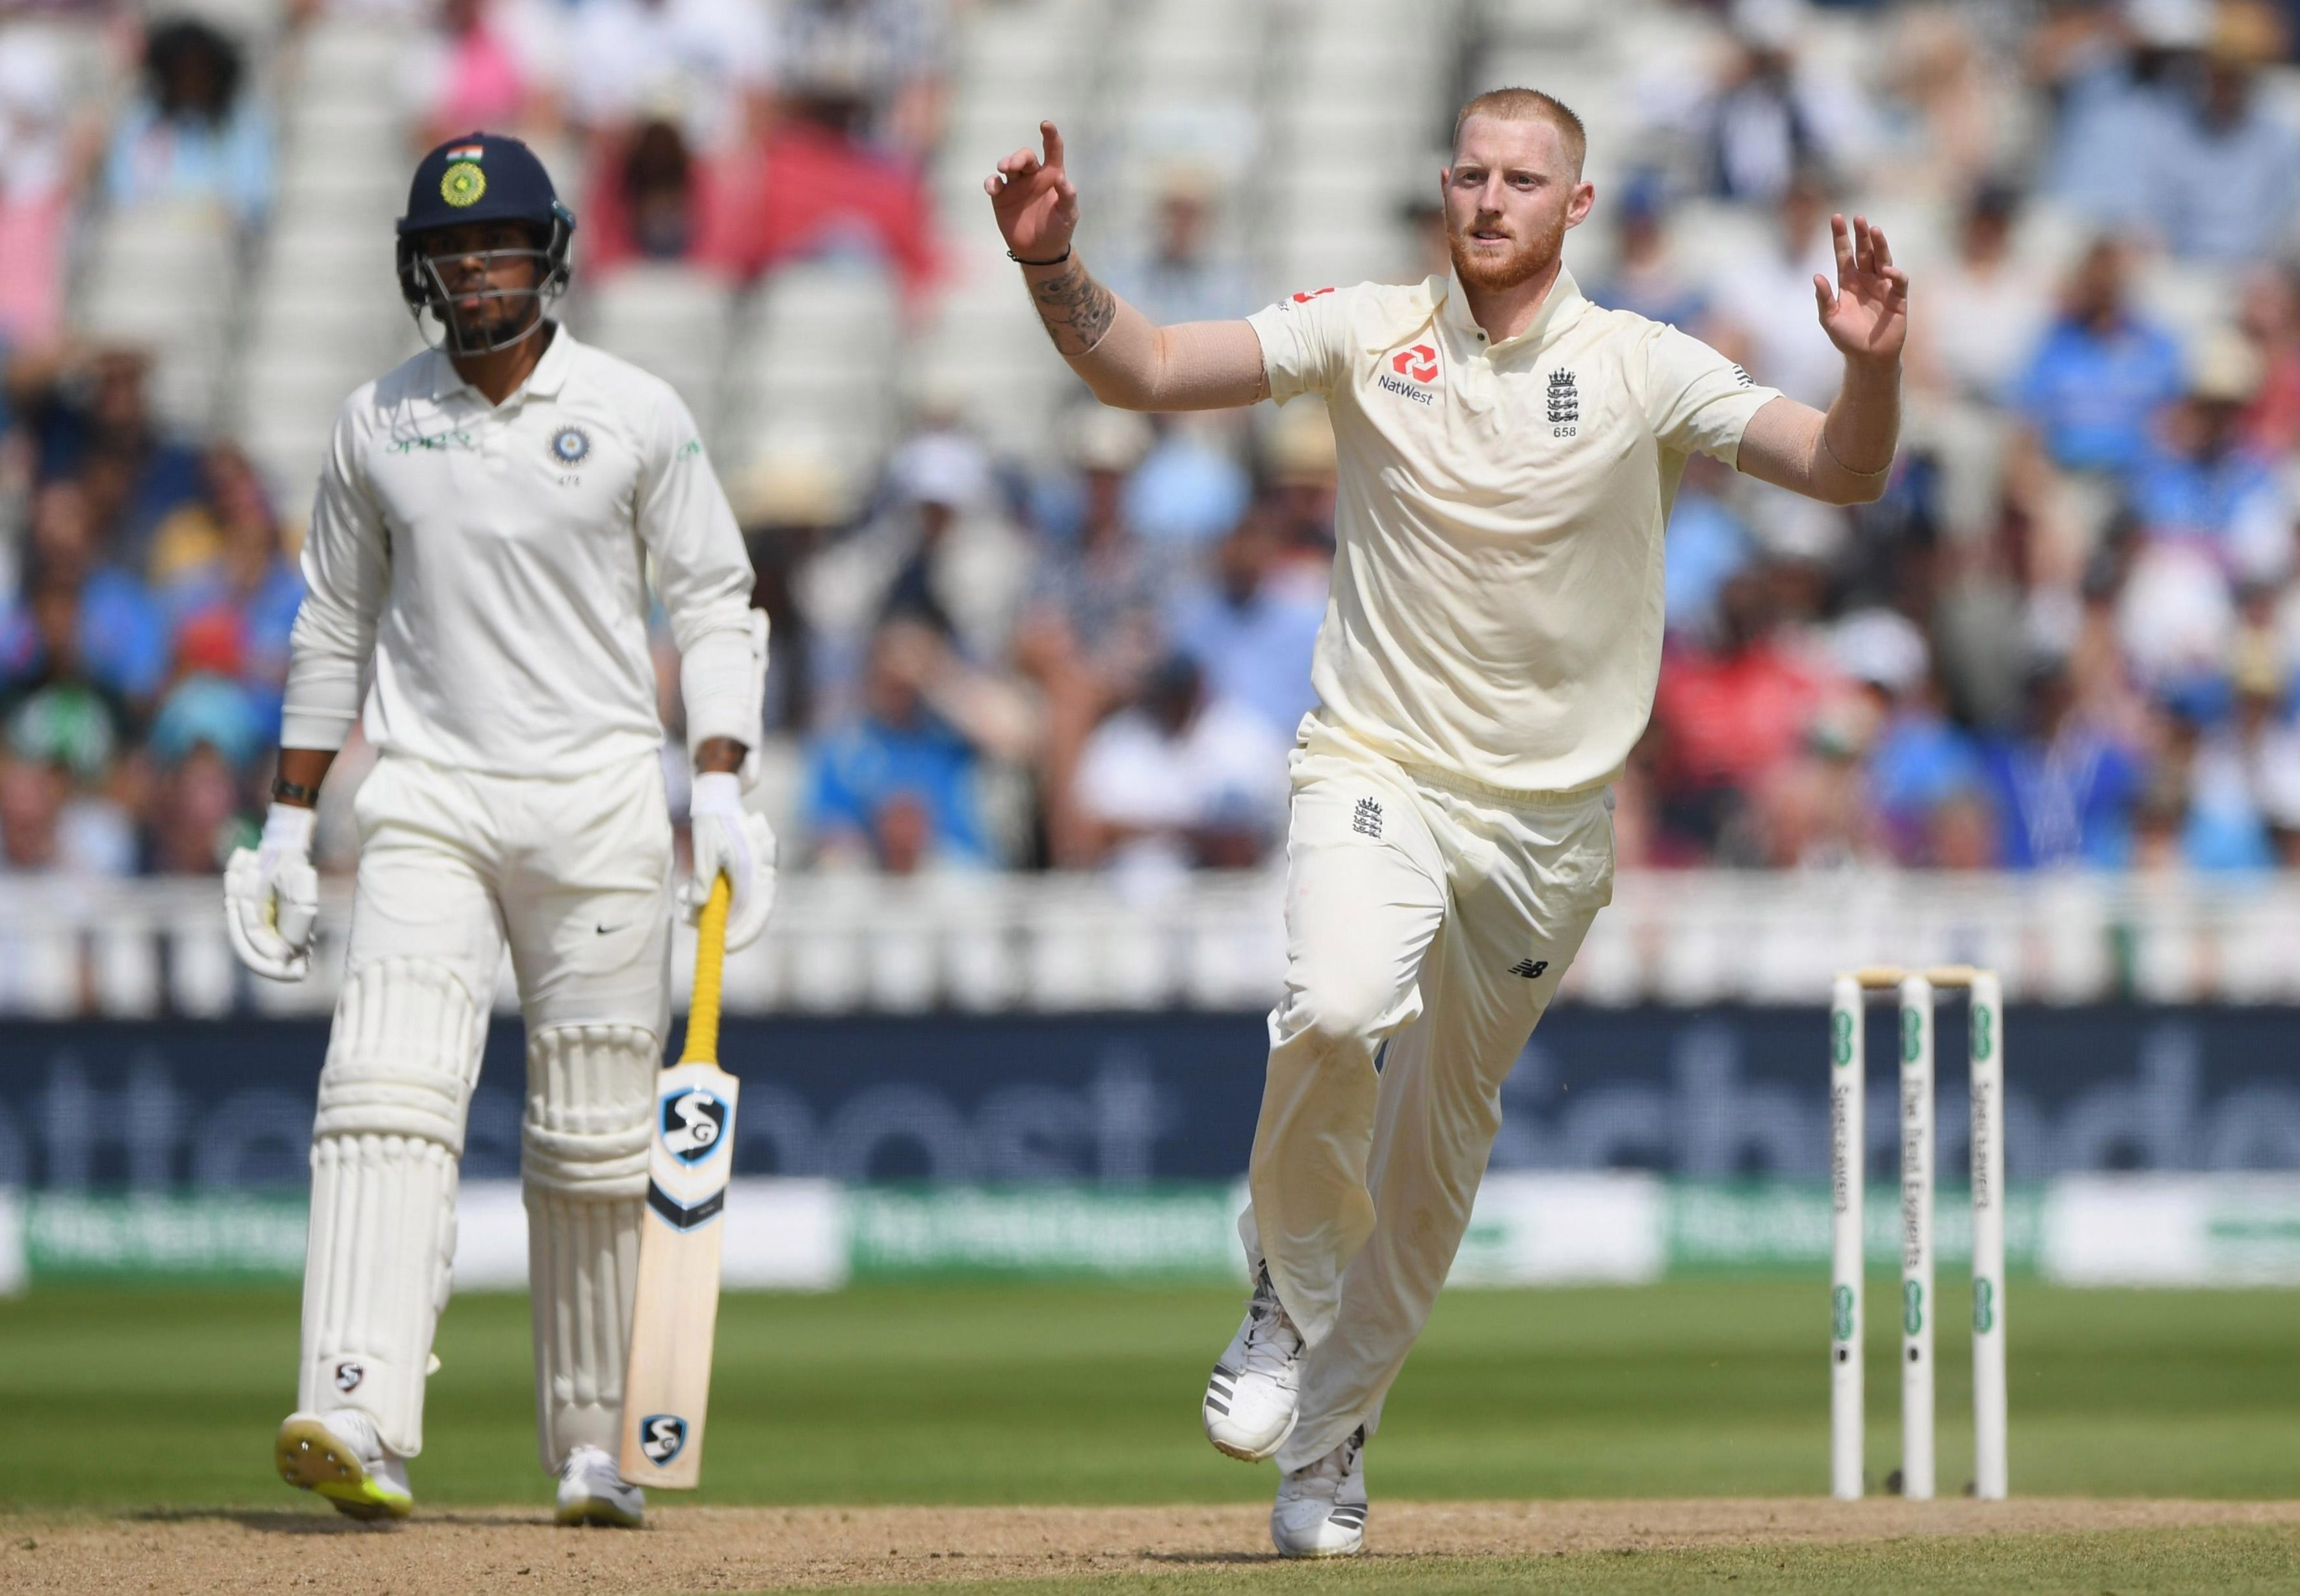 All-rounder Ben Stokes has been left out of the 13-man England squad for Trent Bridge but a call-up is not out of the question if a jury clear him of affray